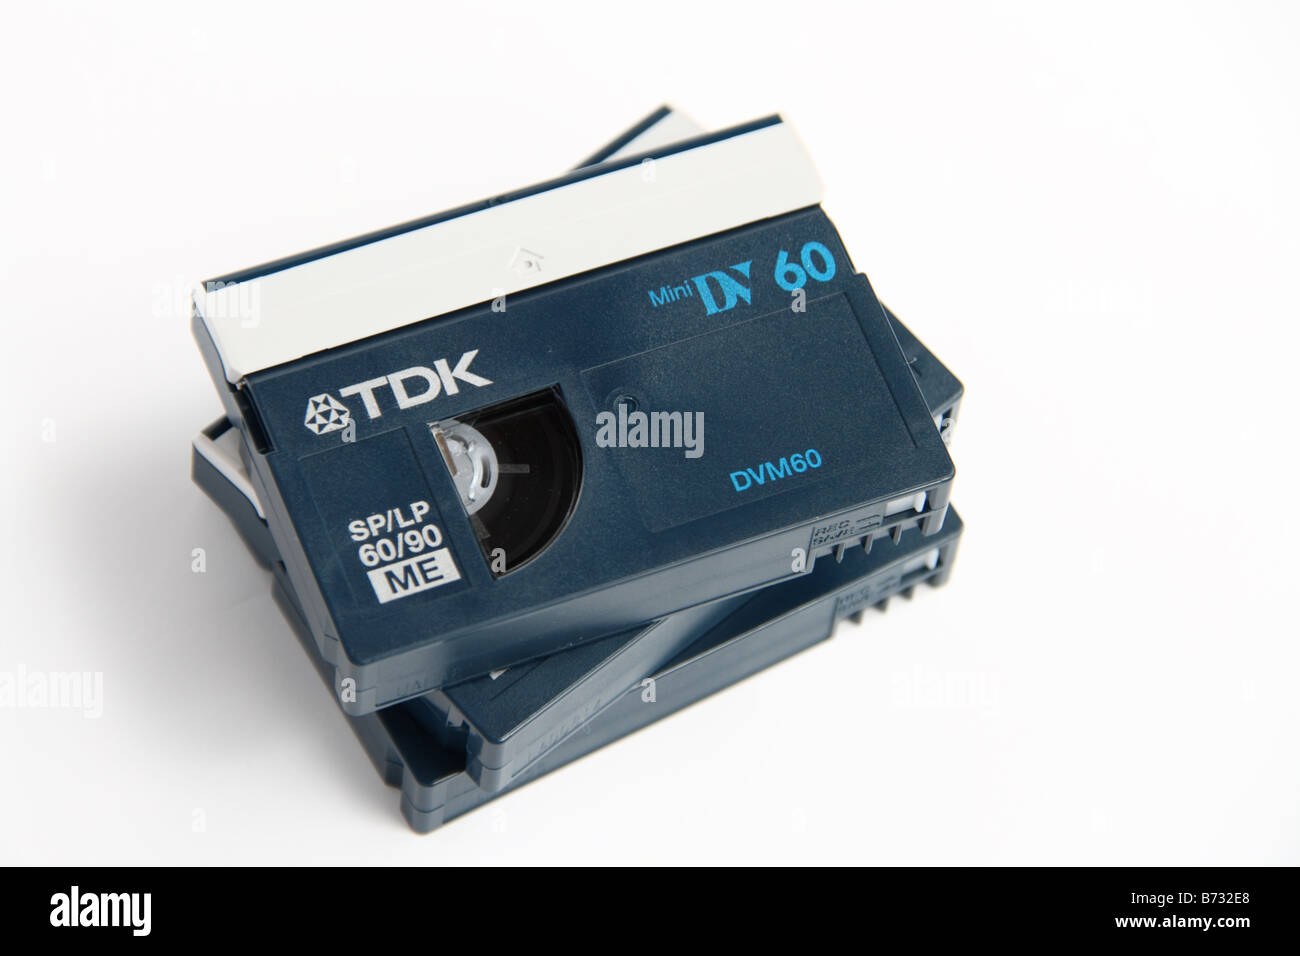 A pile of miniDV tapes isolated on white background - Stock Image